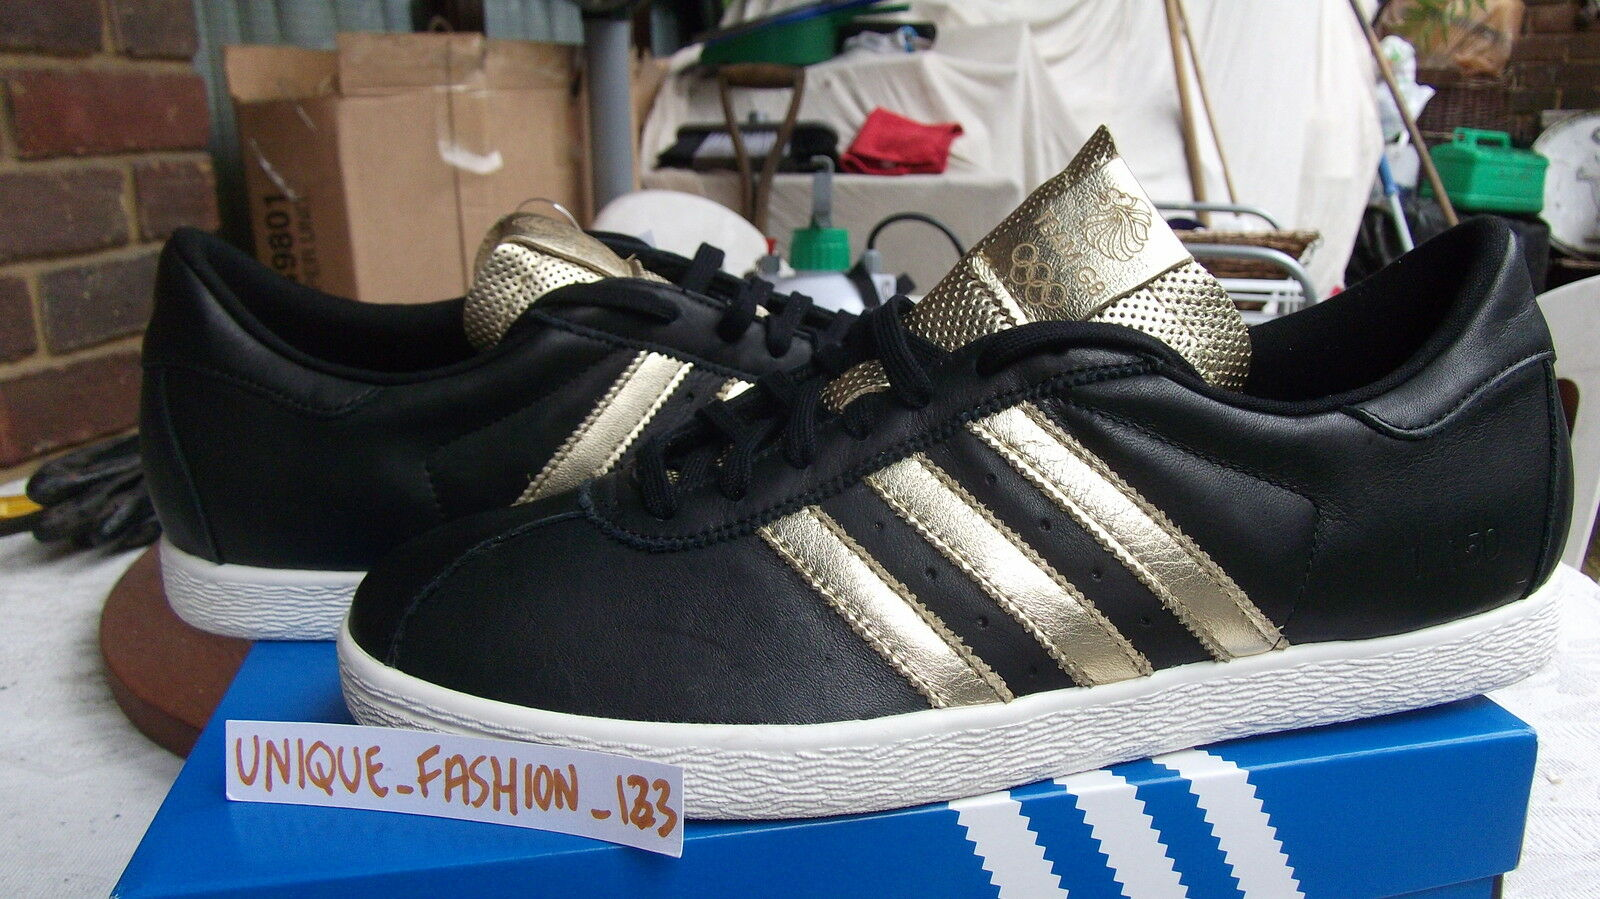 adidas tobacco team gb london london london 2012 olympic 1 / 150 couples nous 6,5 e 39 1 / 3 noel e773dd